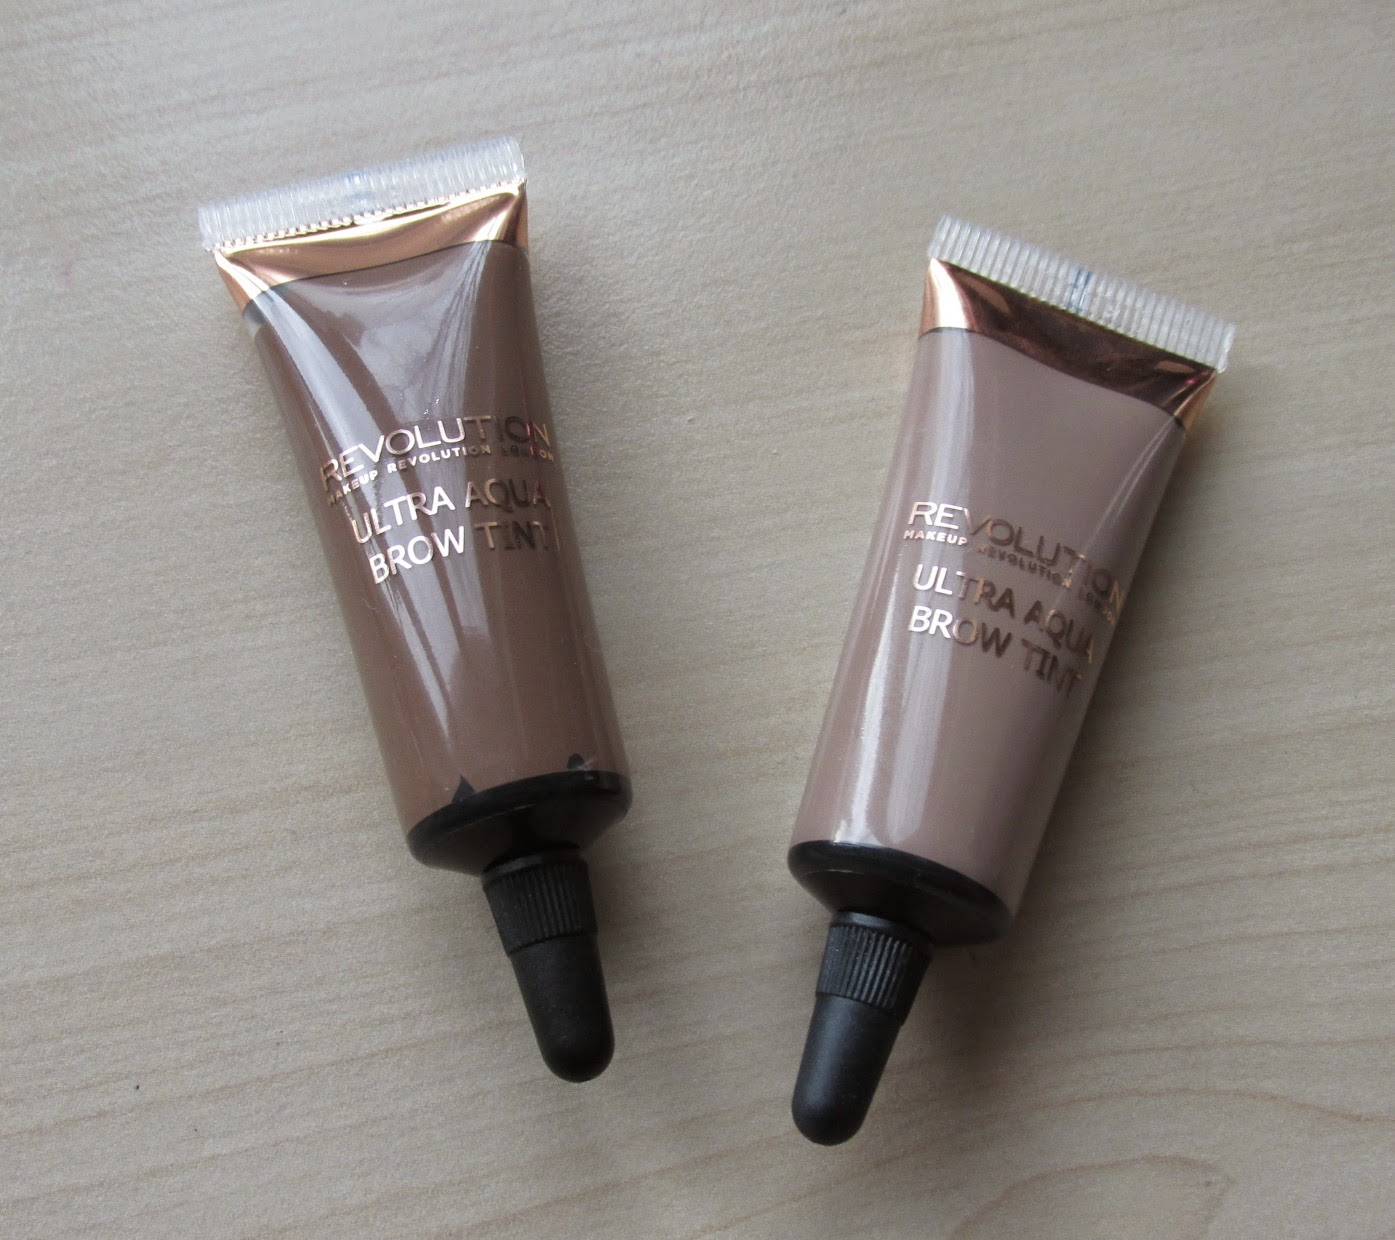 Makeup Revolution Ultra Aqua Brow TInt Fair and Light